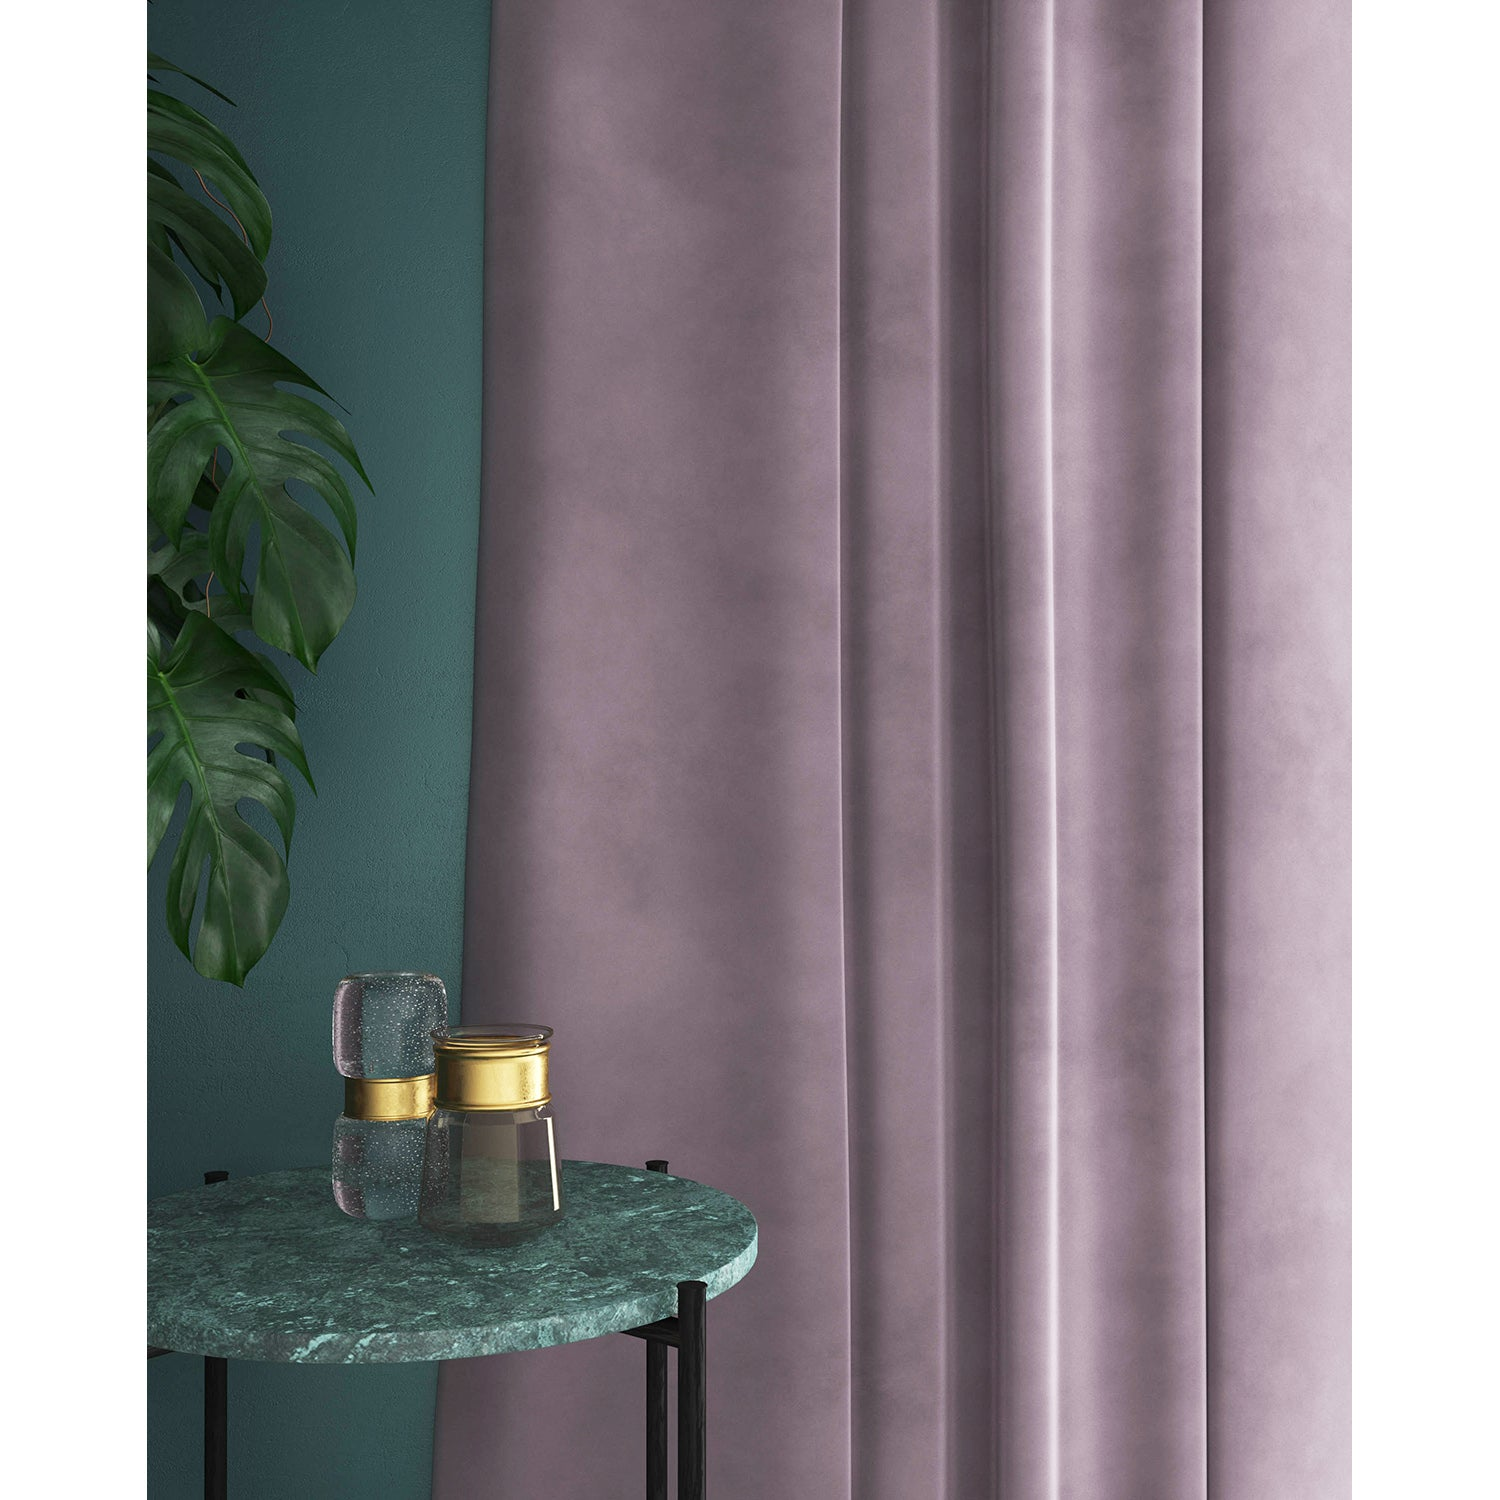 Lilac velvet curtains with a stain resistant finish